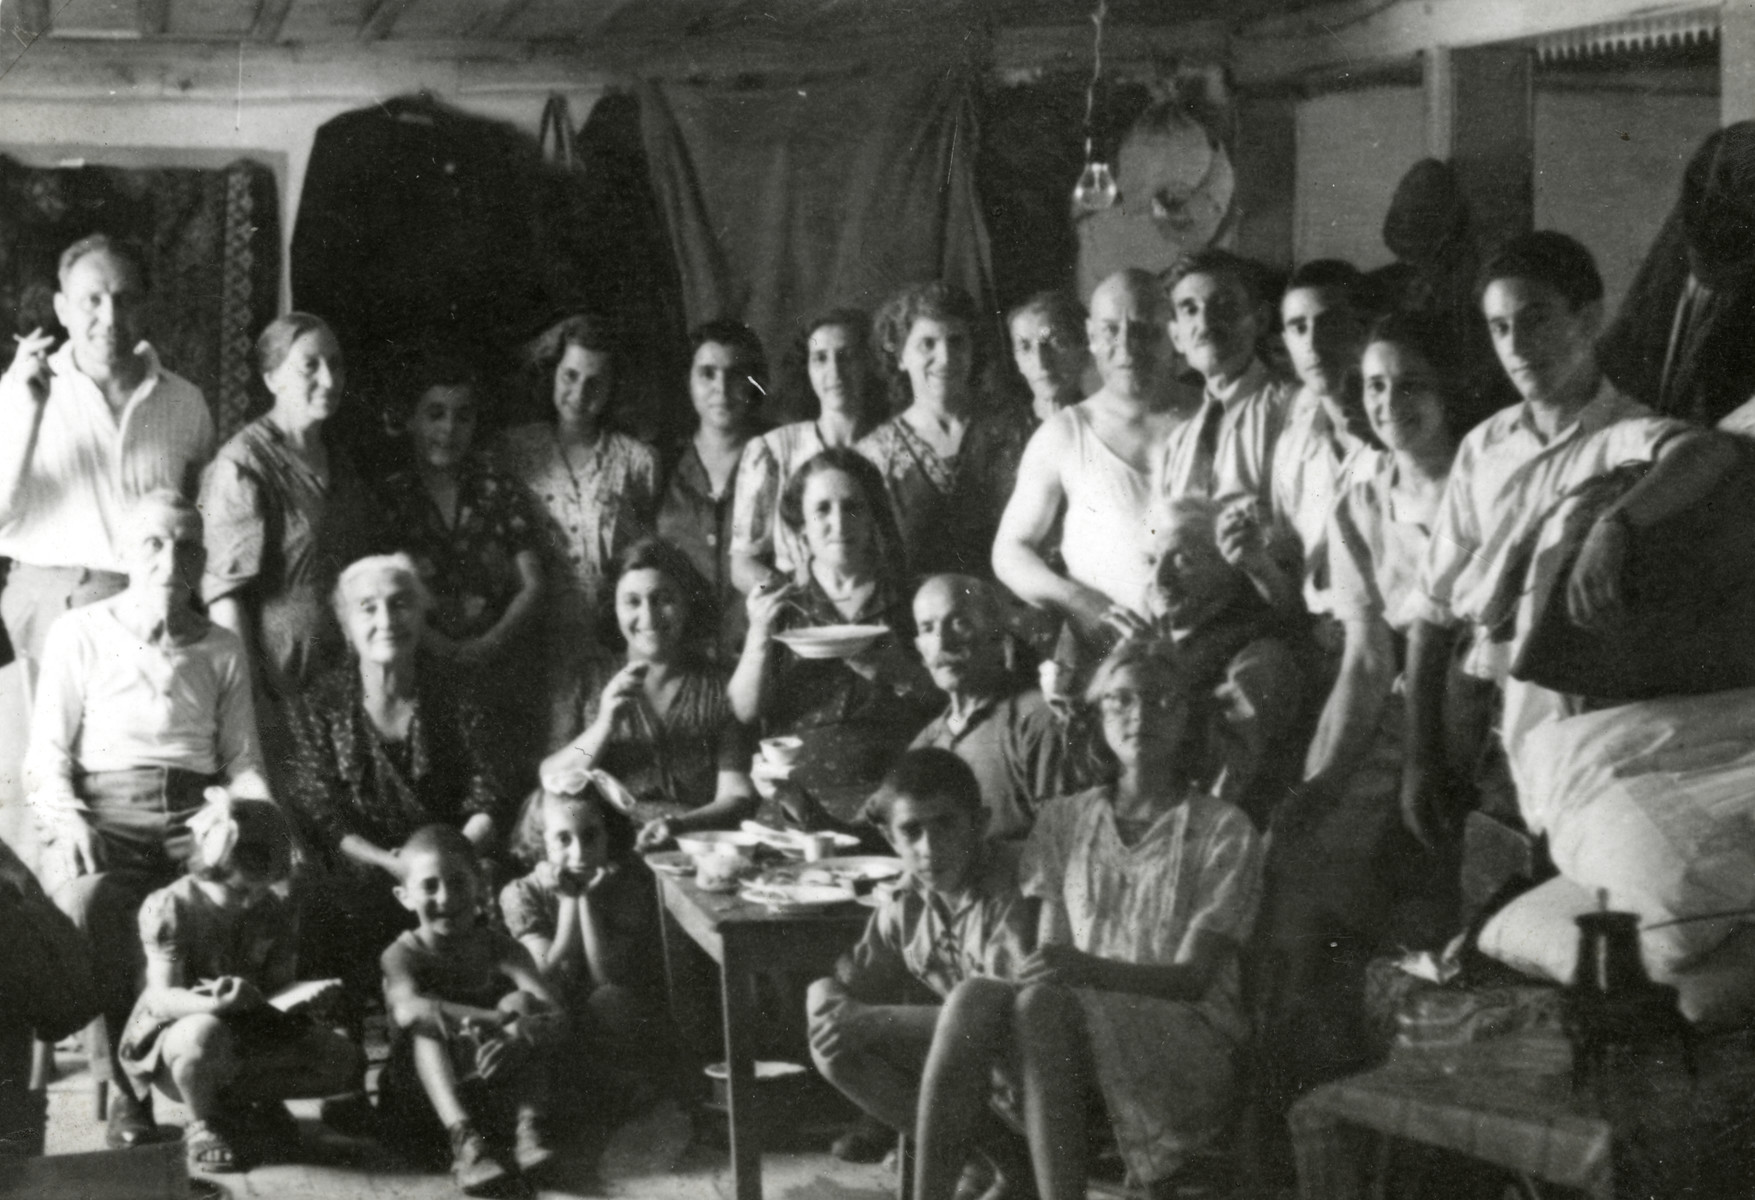 Jewish families crowd into temporary living quarters in the balcony of the synagogue in Haskovo.  Reine Behar is on the bottom right.  Her father is standing behind her.